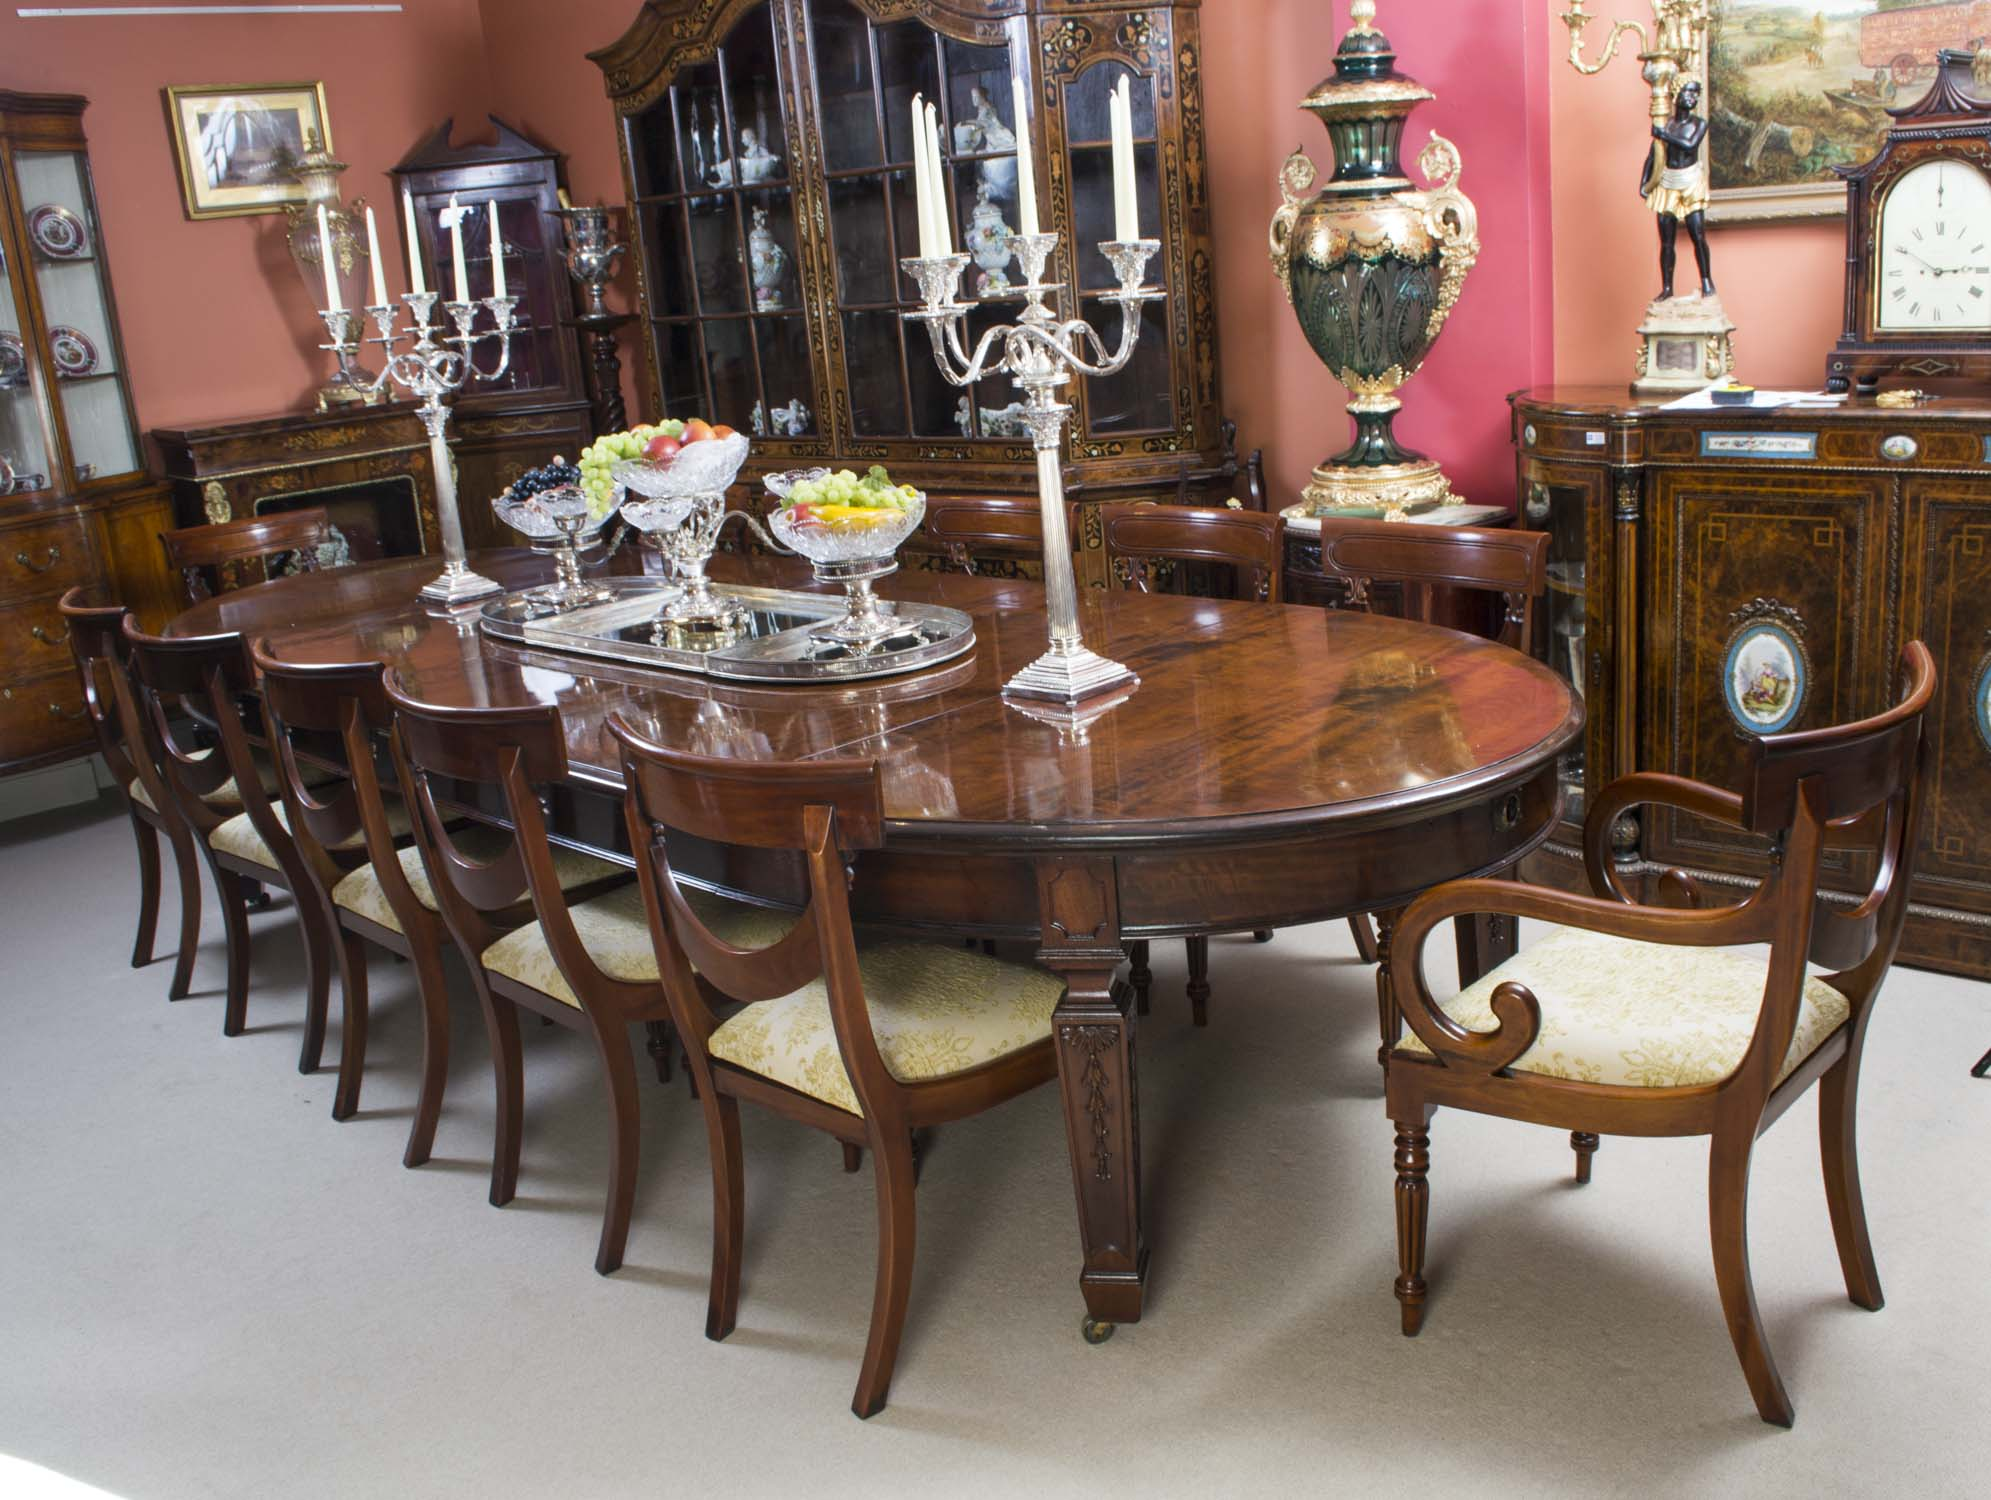 regent antiques dining tables and chairs table and chair sets antique 12ft 6 edwardian. Black Bedroom Furniture Sets. Home Design Ideas